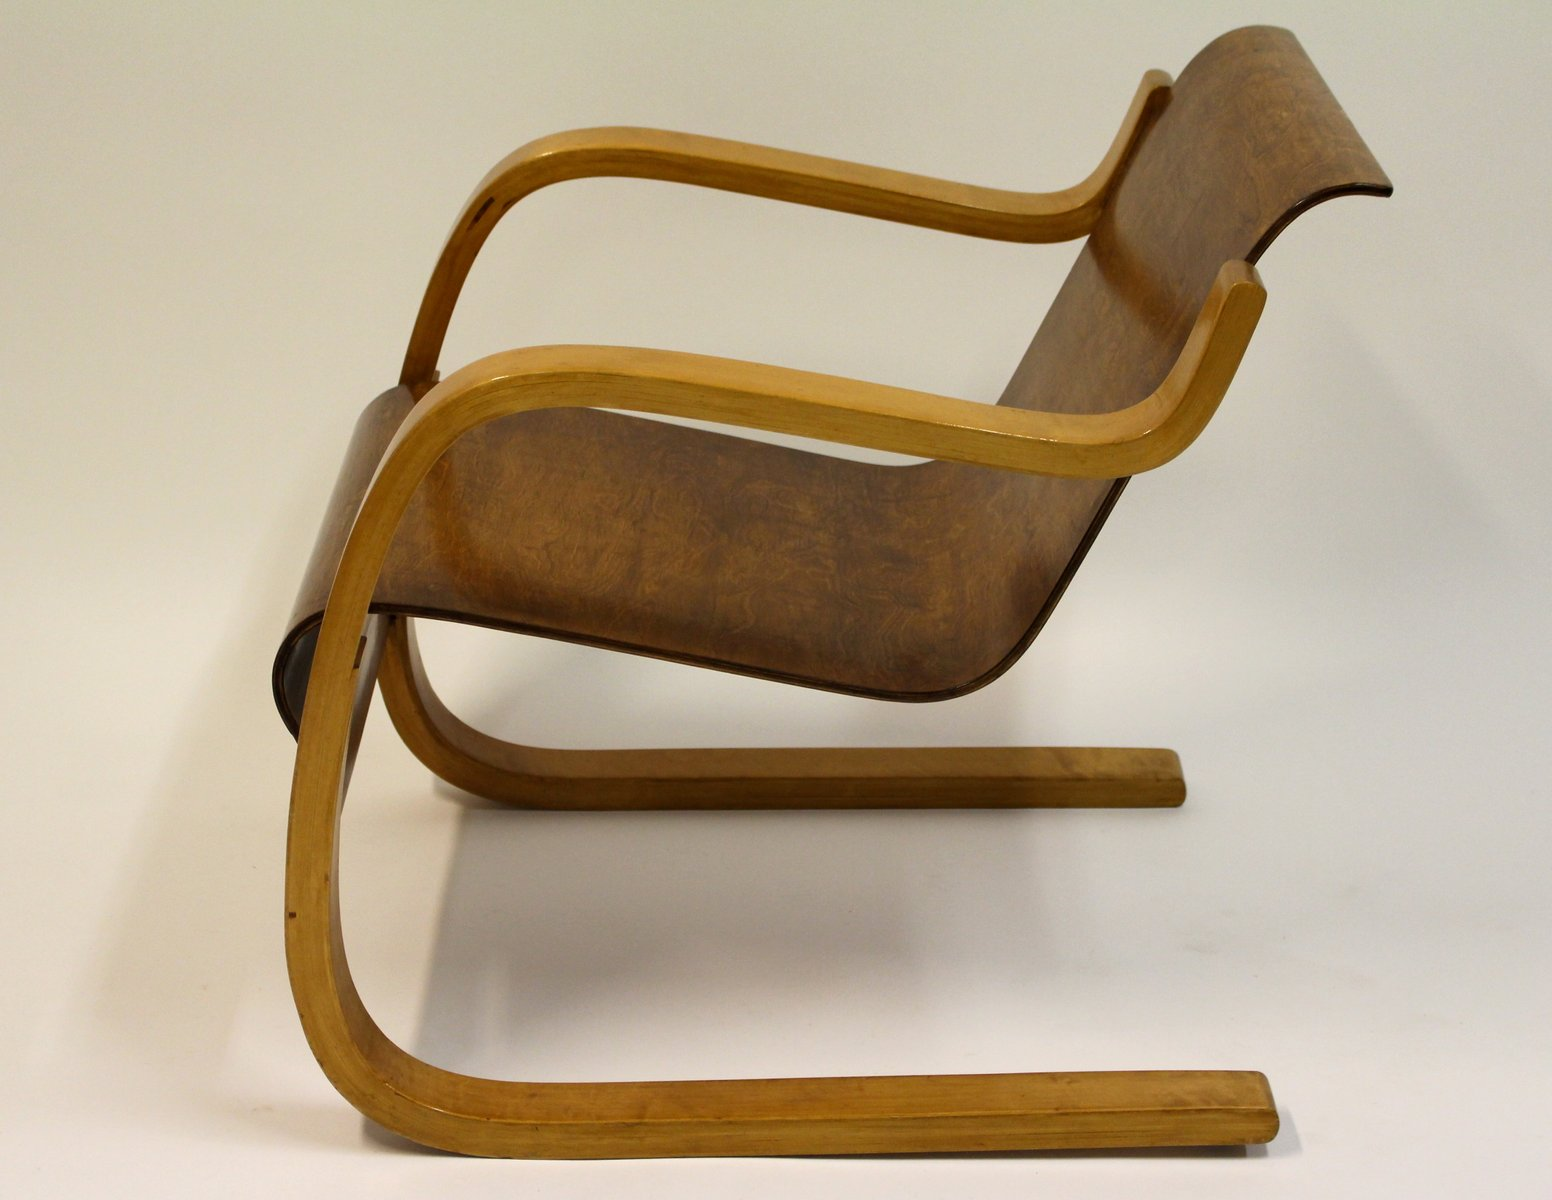 Vintage aalto chair - Previous